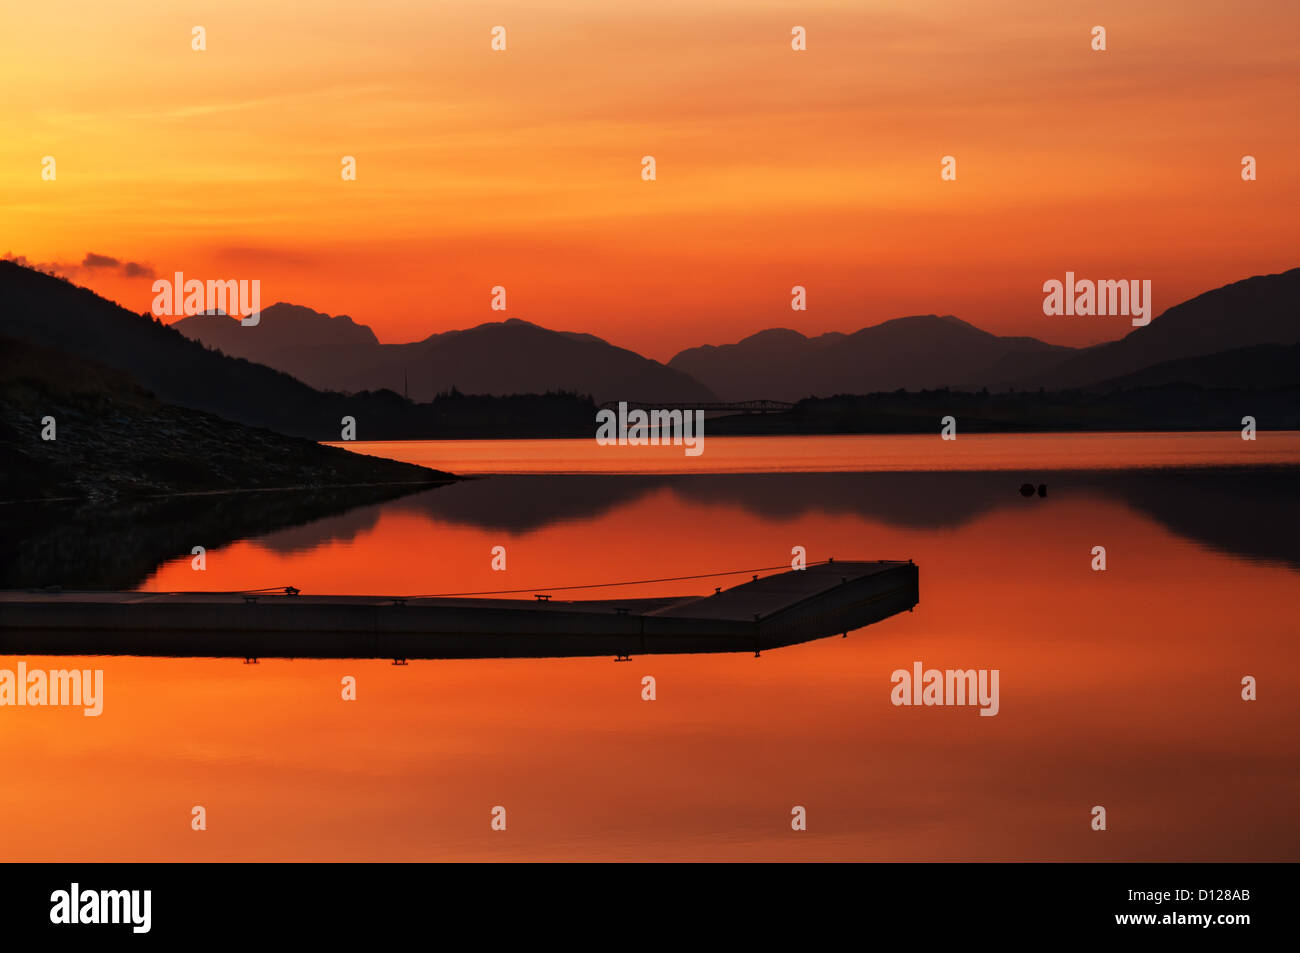 Loch Leven in highlands of Scotland near Glencoe. A beutiful sunset with a pier in the foreground and Scottish mountains - Stock Image